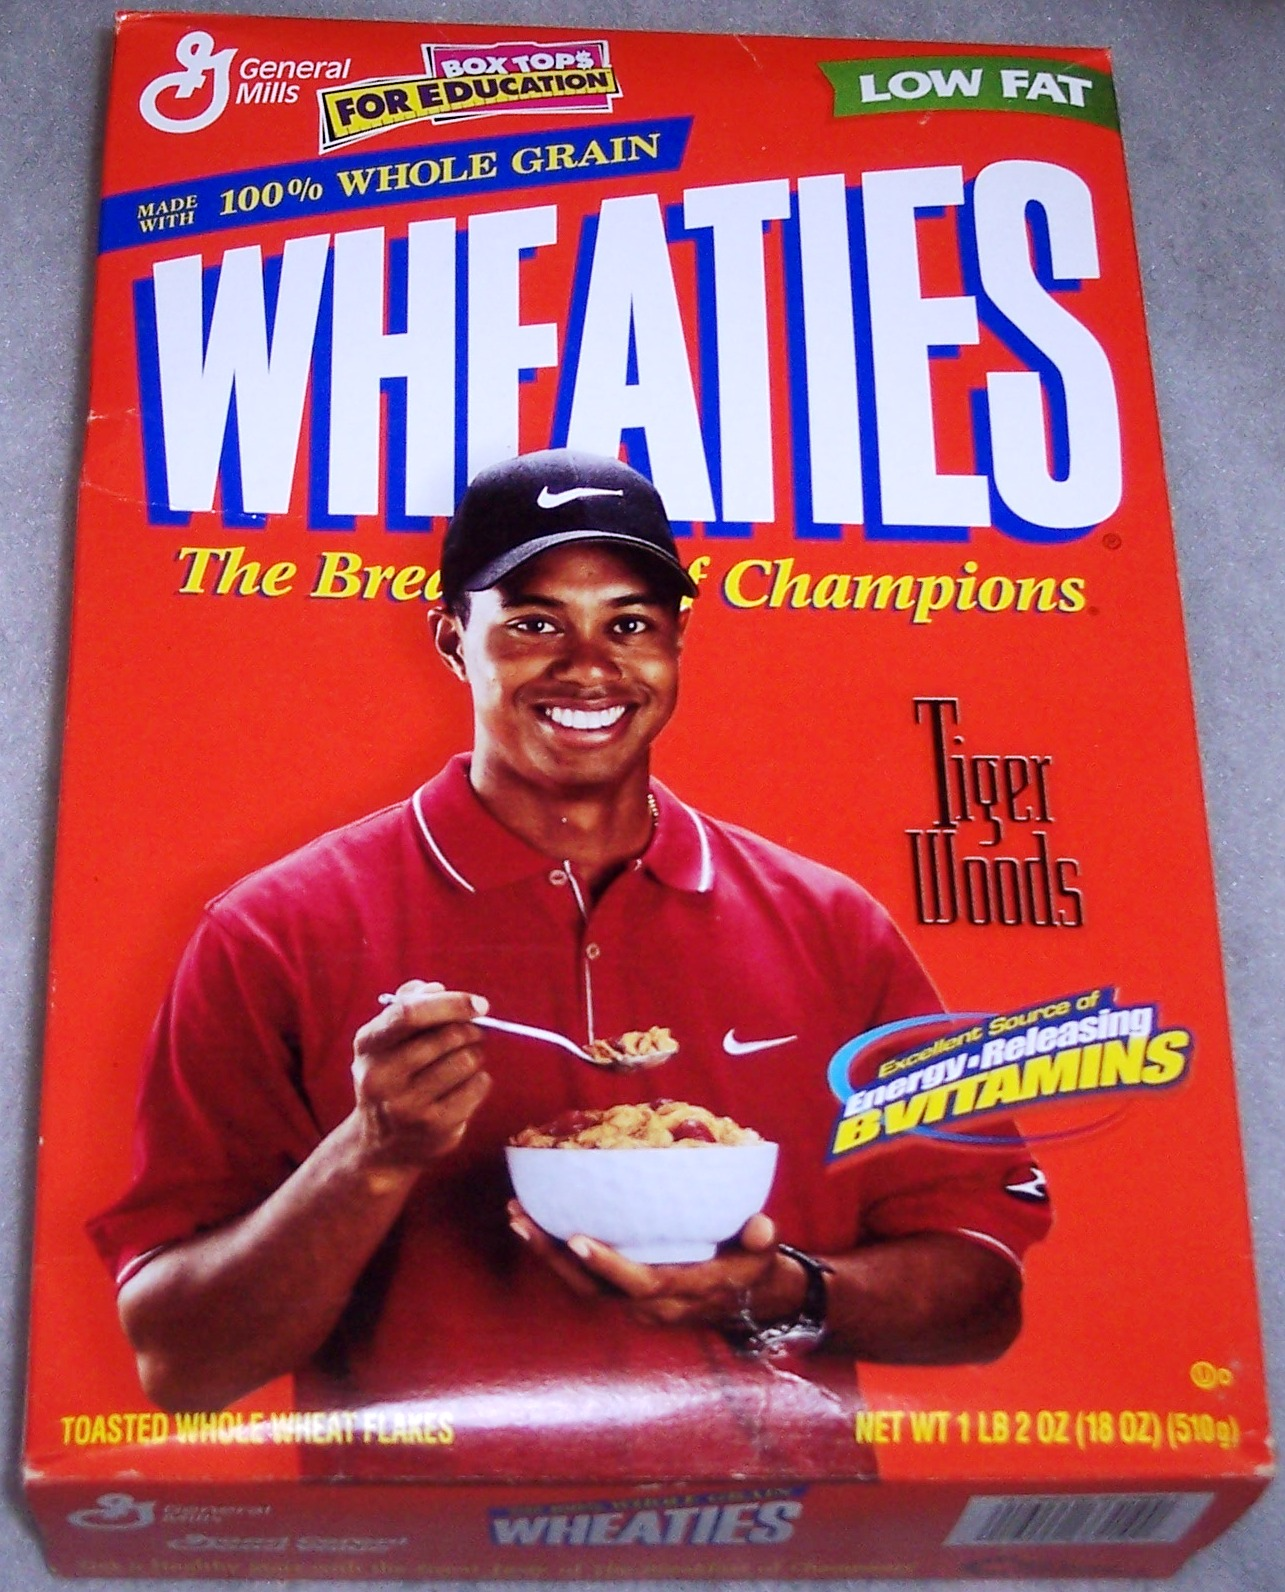 You've Made It When Your Photo Adorns A Box Of Wheaties